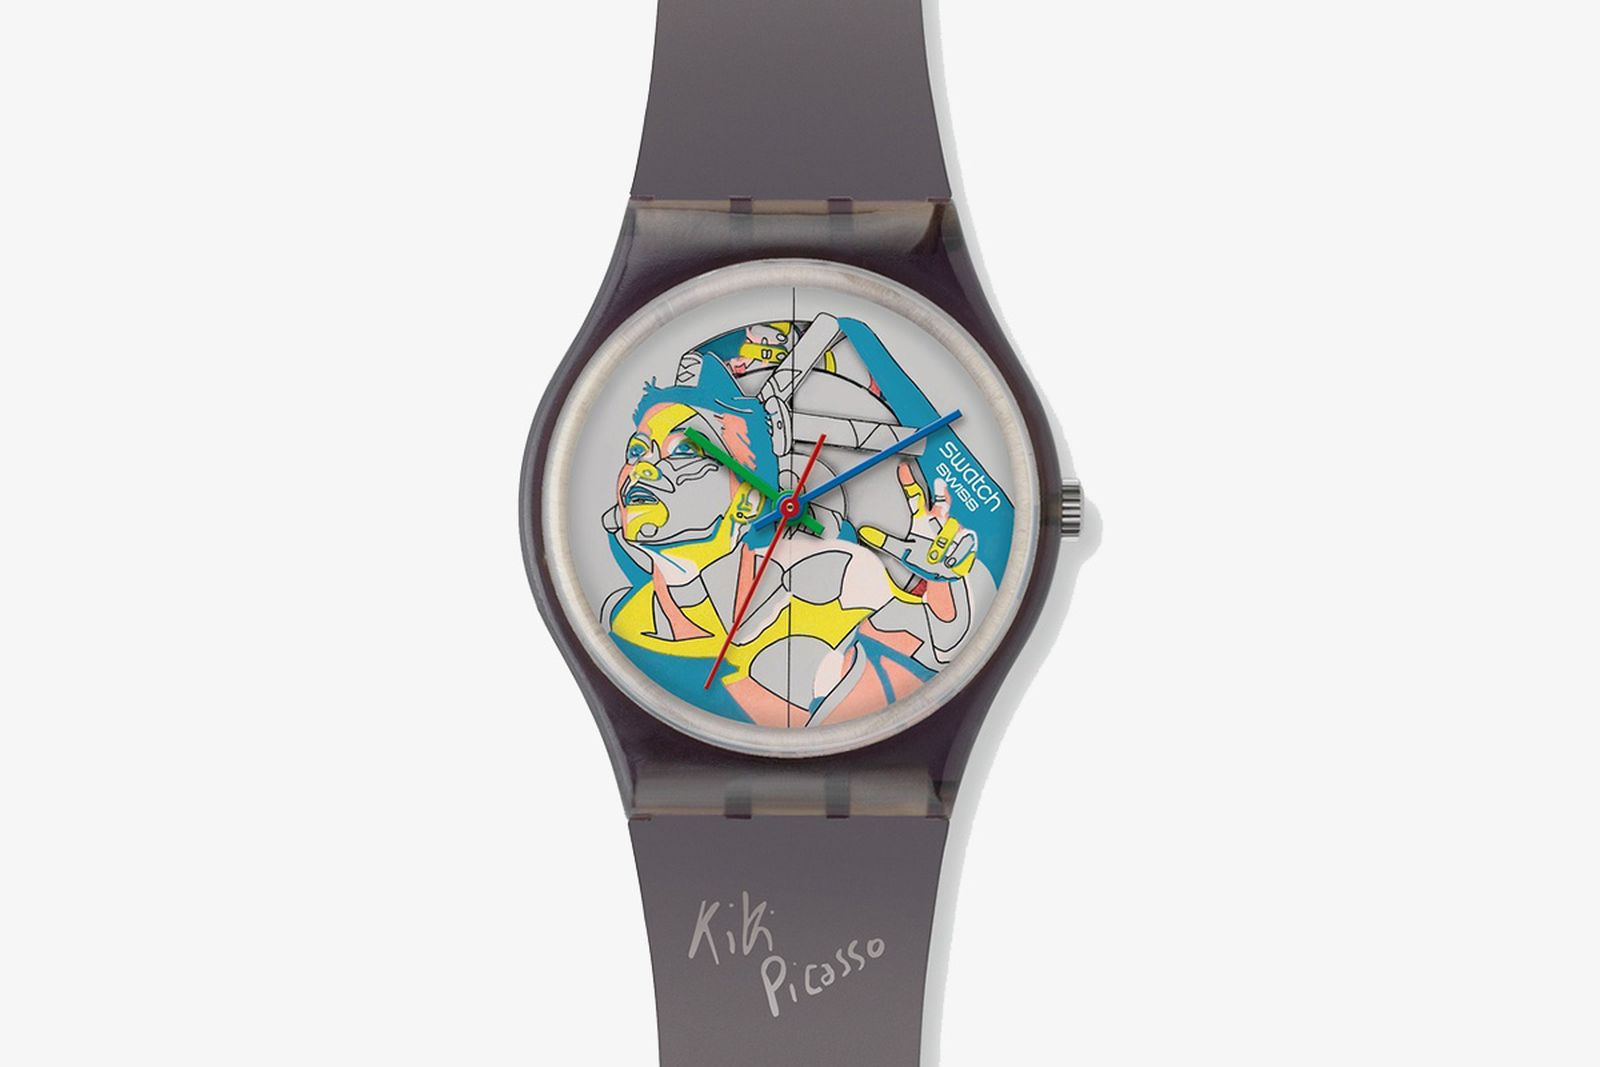 swatch collaboration history Amanda Lepore Hodkinee Kiki Picasso